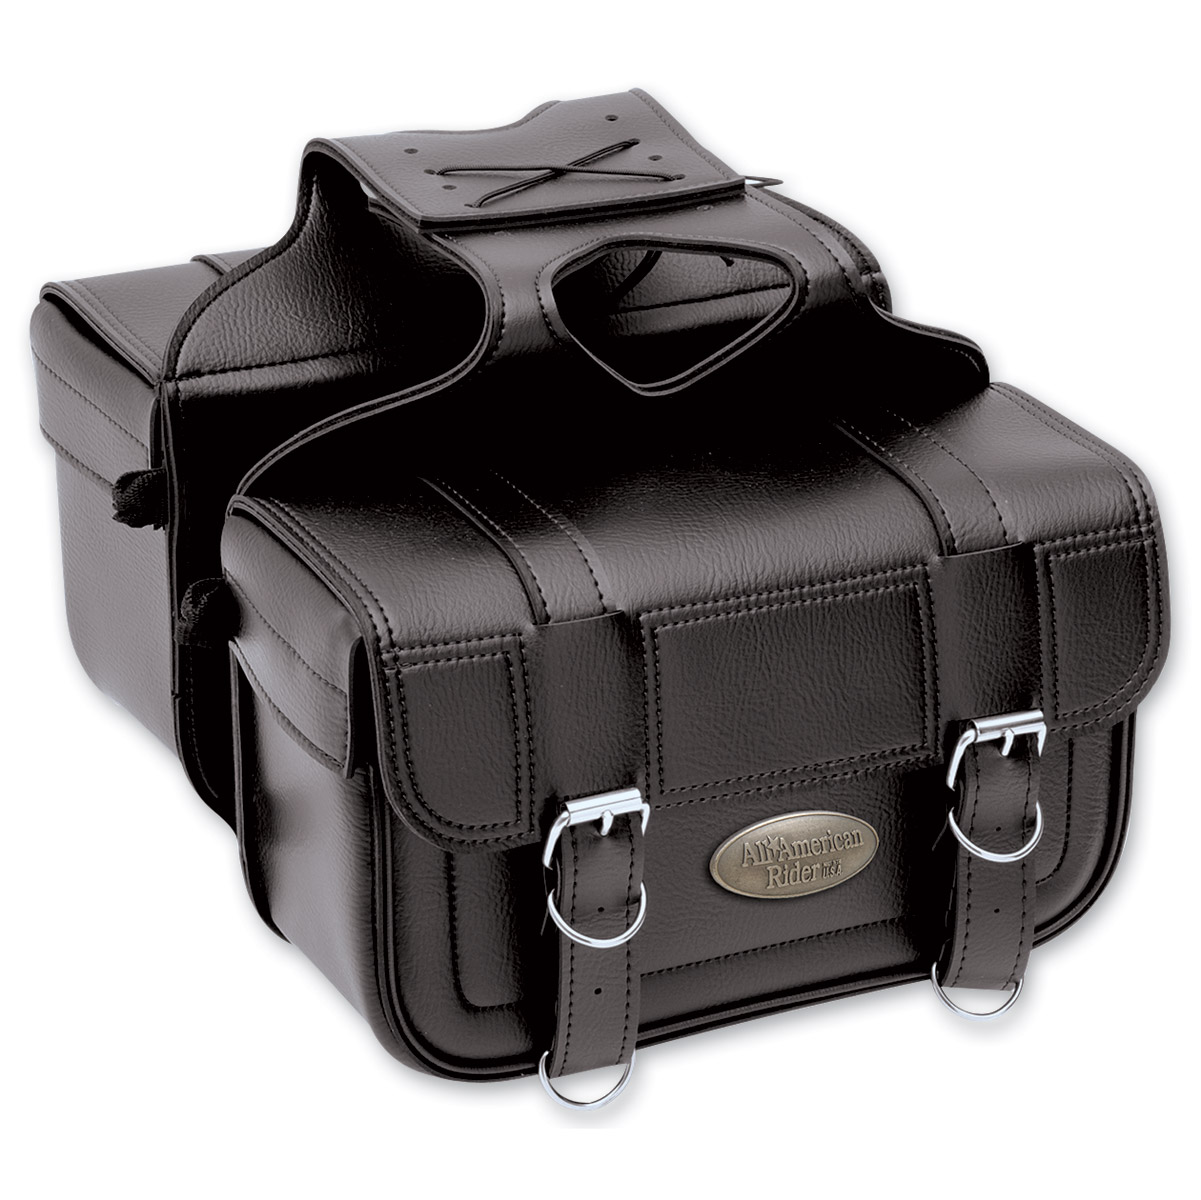 All American Rider Flap-Over Saddlebags